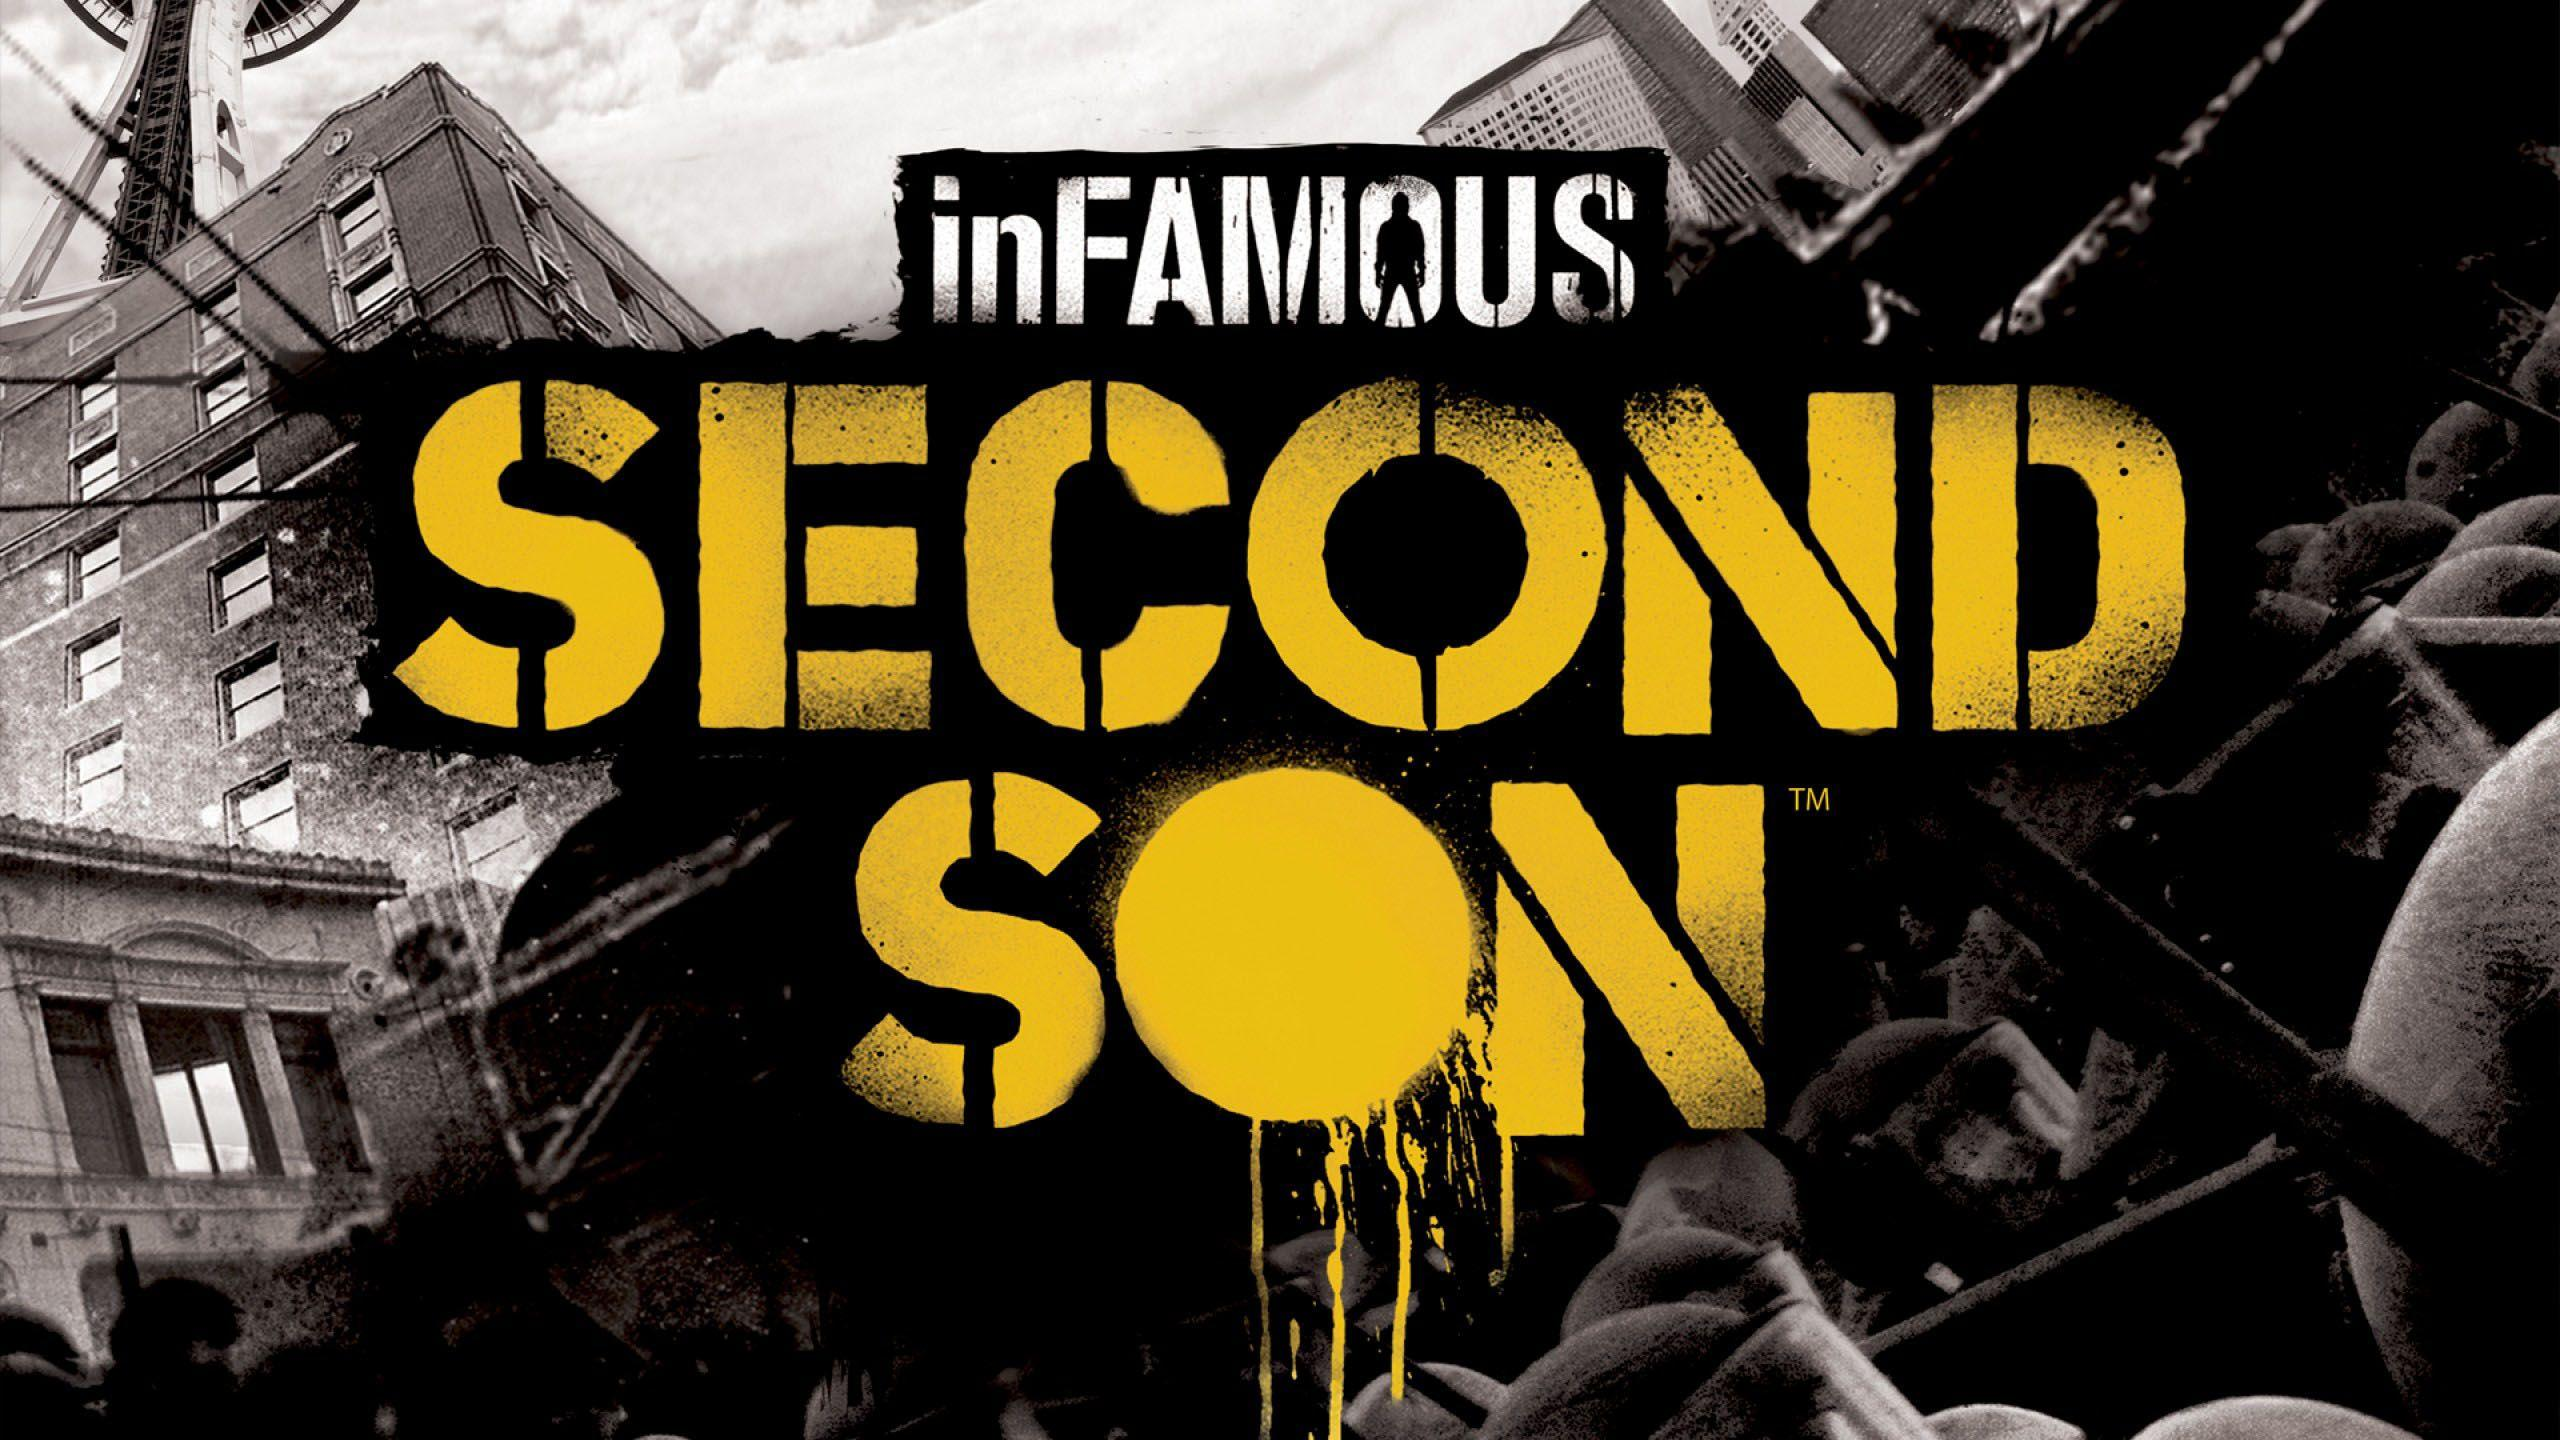 inFAMOUS Second Son Logo - 2560x1440 - WHQD 16/9 (Wide Quad High ...